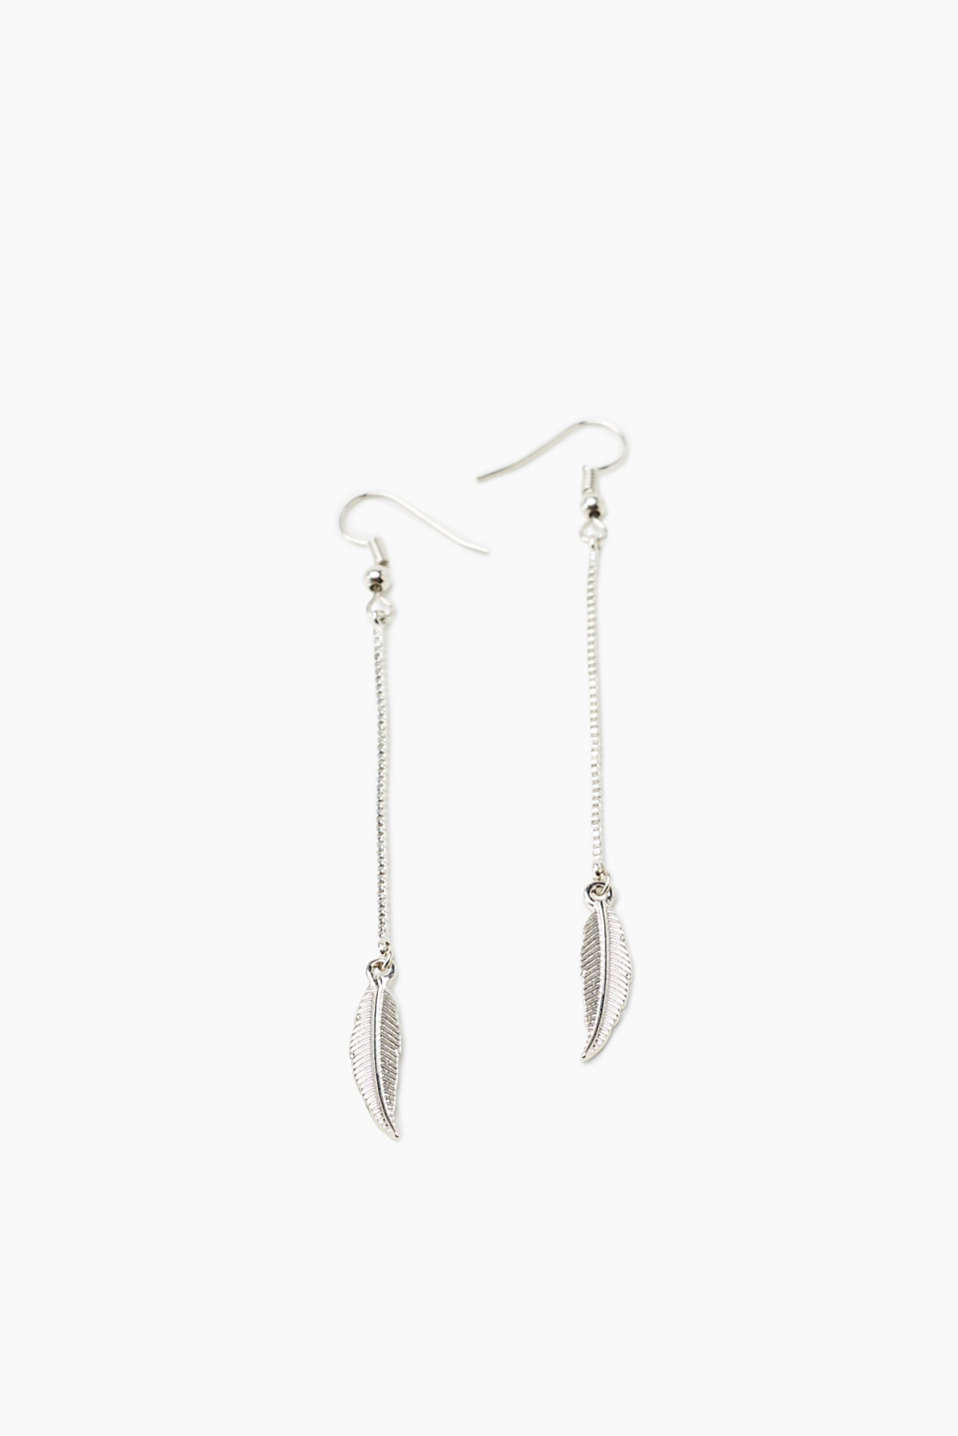 Earrings with a chain and feather pendant, made of metal with fish hooks